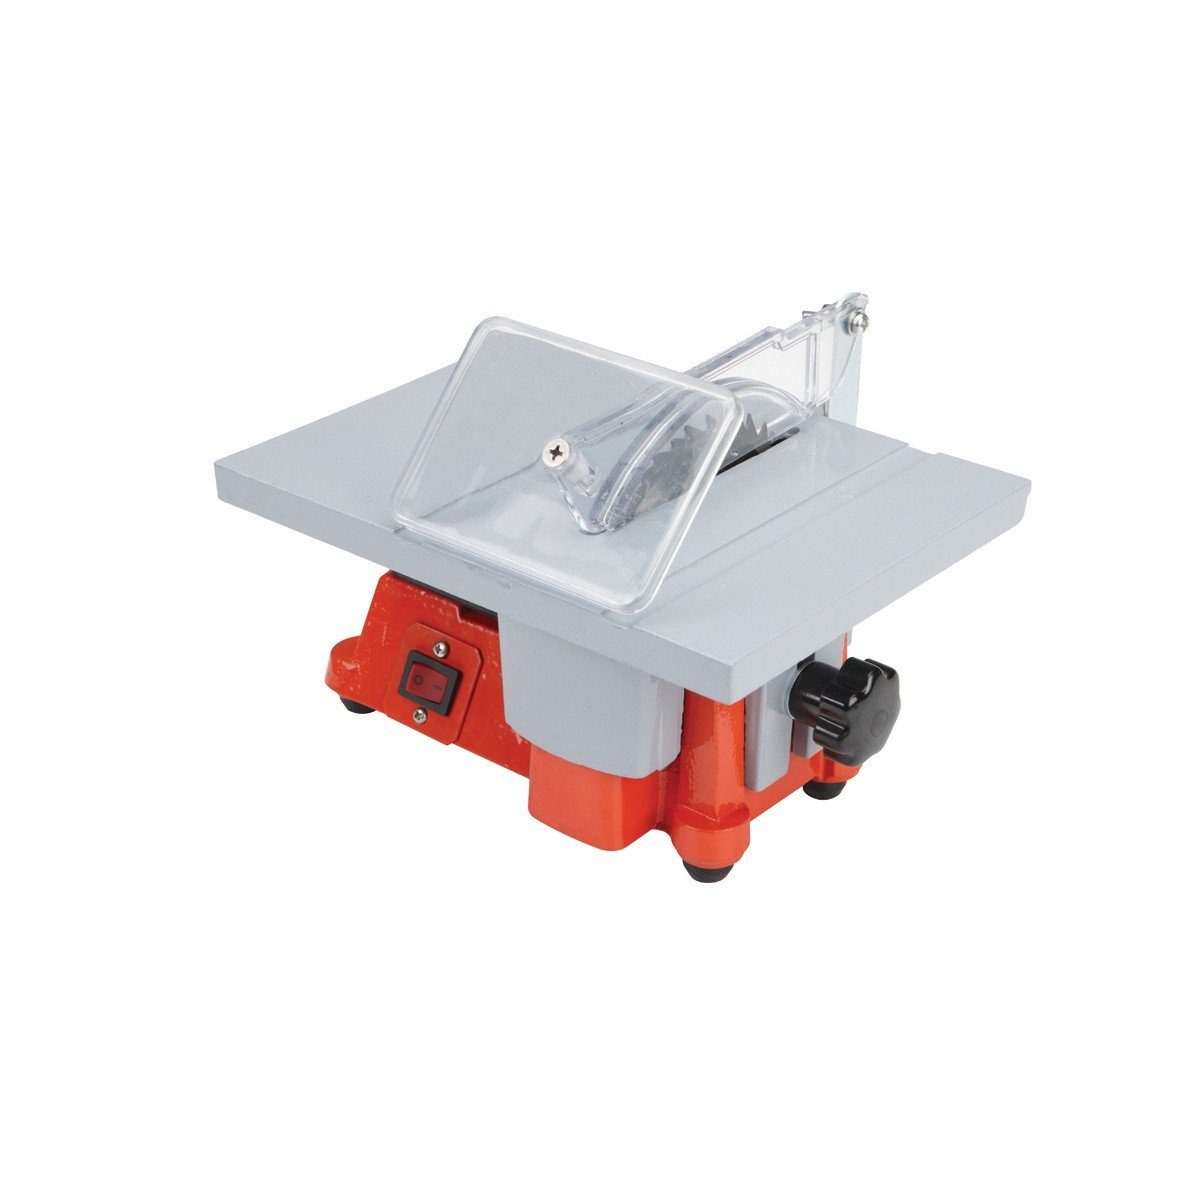 4 inch Mighty-Mite Table Saw by Central Purchasing, LLC